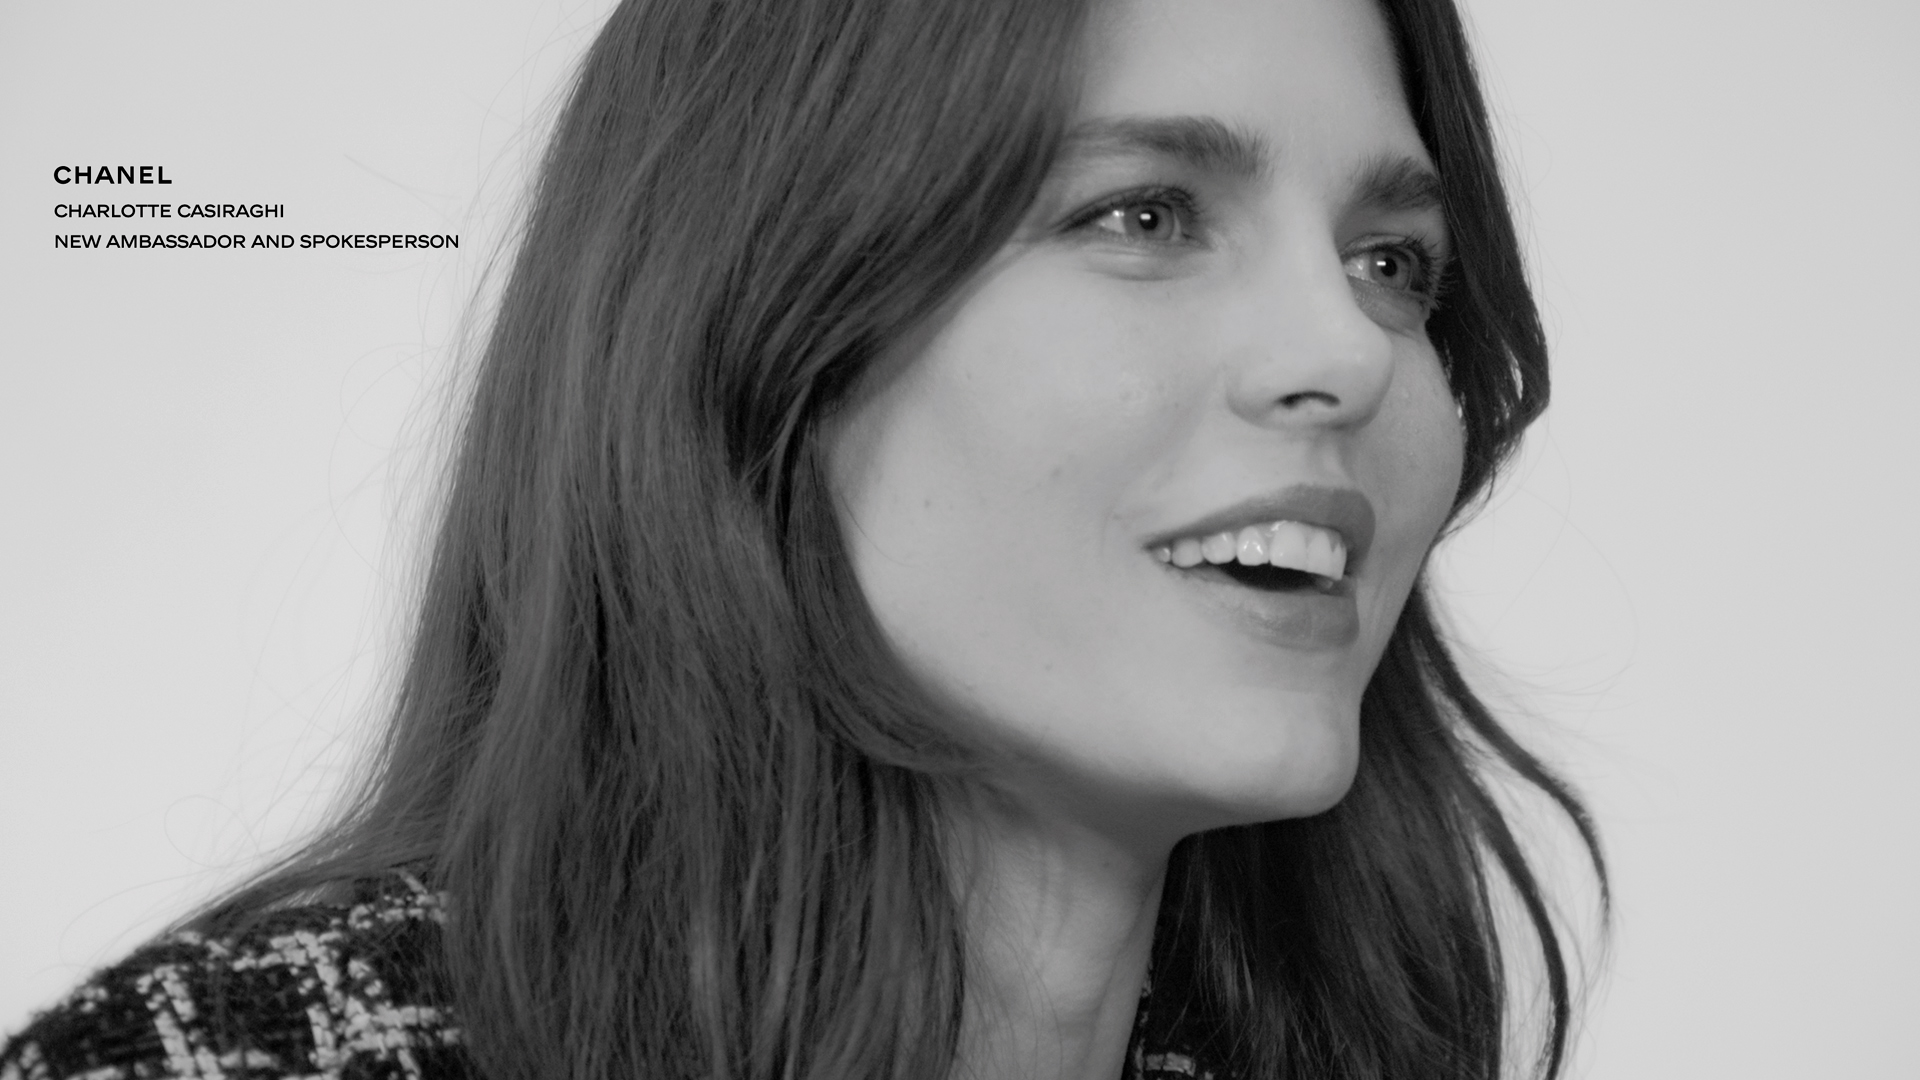 Charlotte Casiraghi To Become Chanel's Ambassador